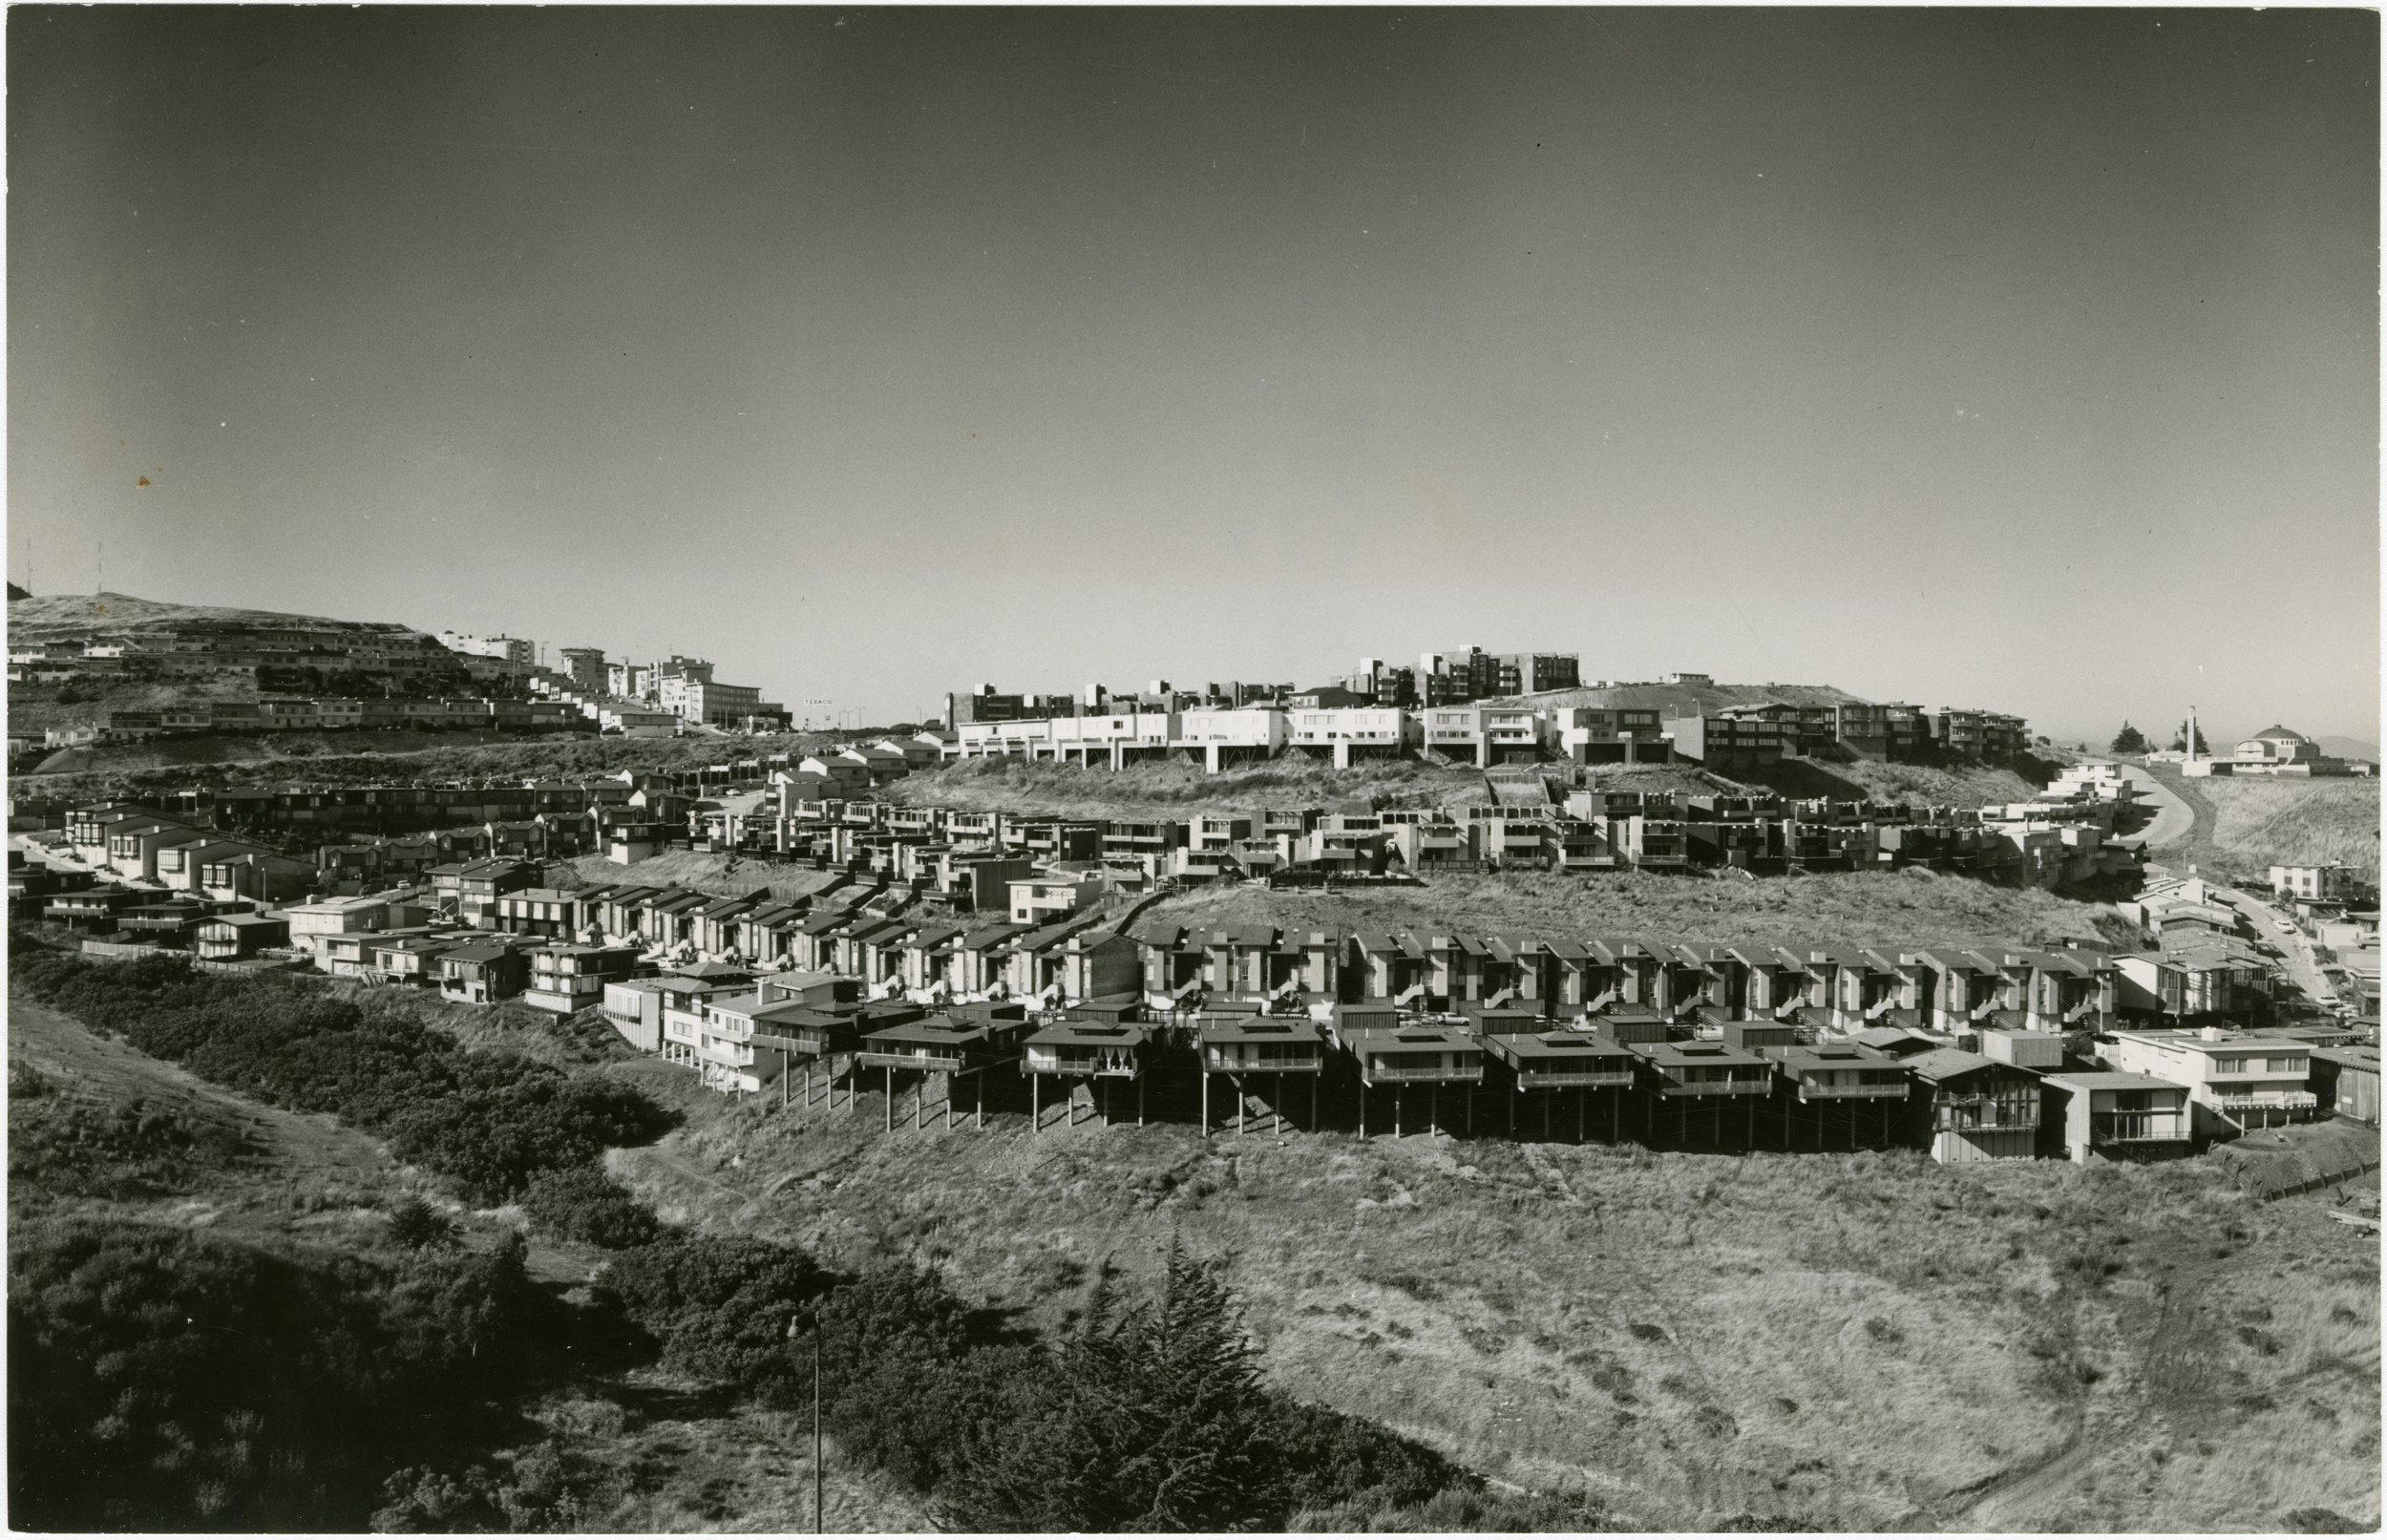 Red Rock Hill, looking northwest over Glen Canyon. Eichler and Galli tracts have recently been completed, c. 1965. [San Francisco History Center, San Francisco Public Library]